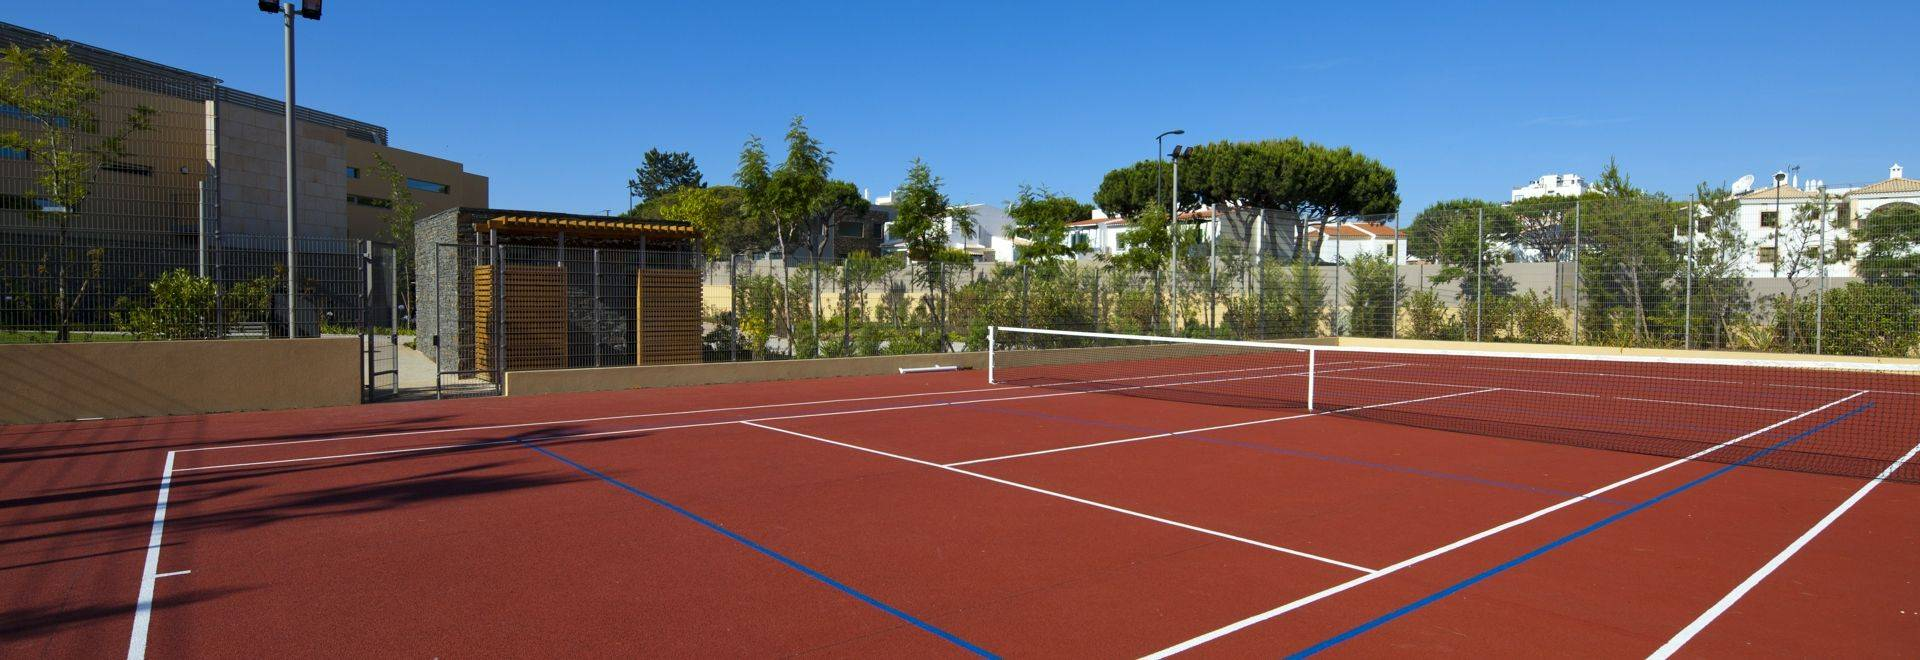 Epic-Sana-Tennis-Court.jpg